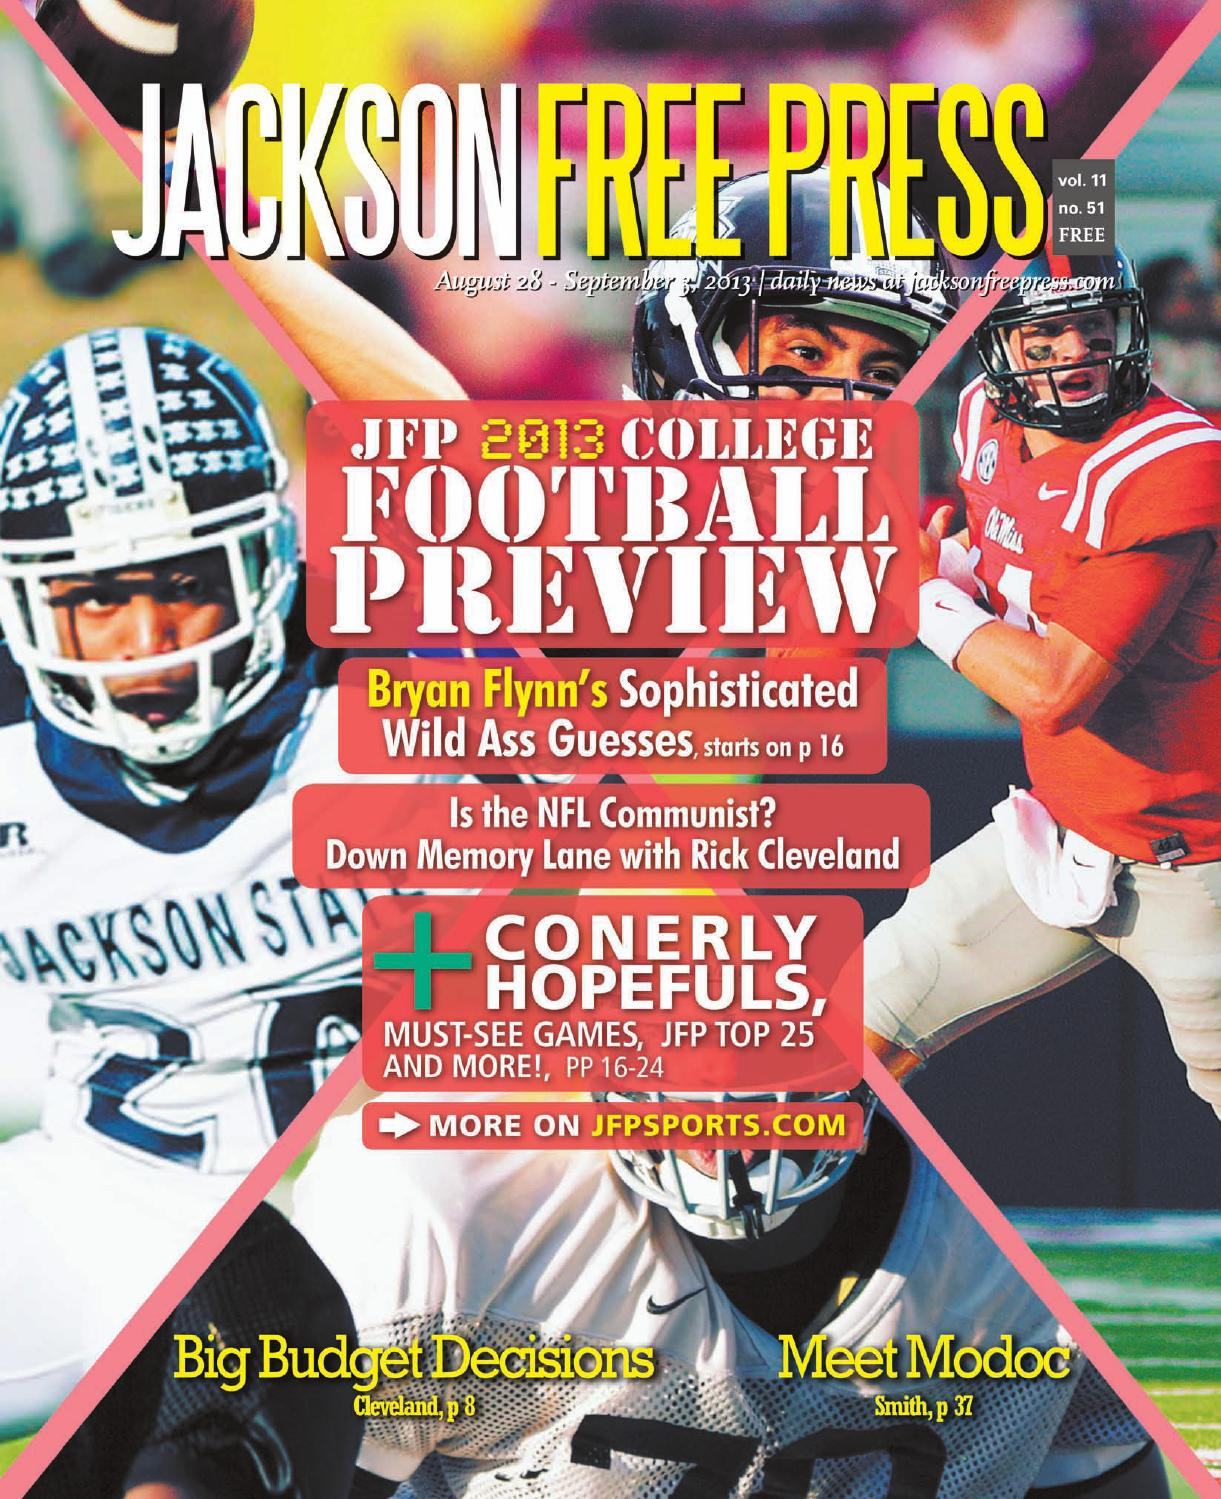 1221d53b6 v11n51 - JFP 2013 College Football Preview by Jackson Free Press ...